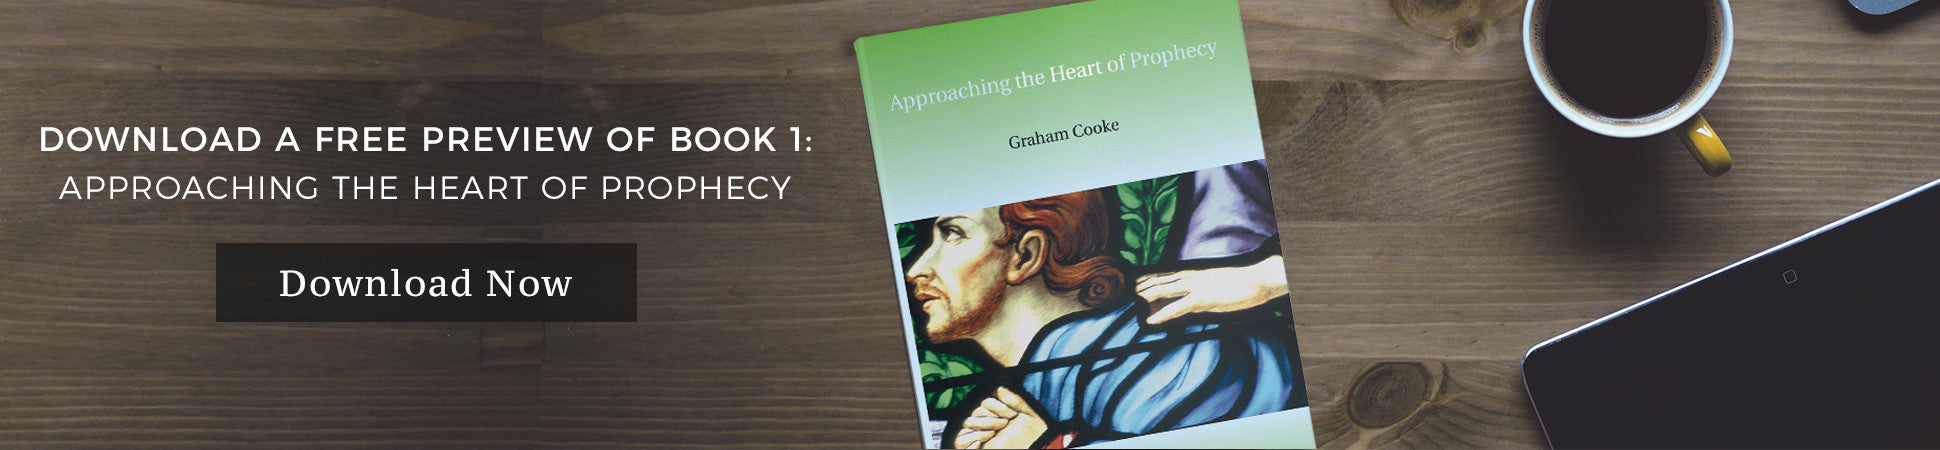 Approaching the Heart of Prophecy preview